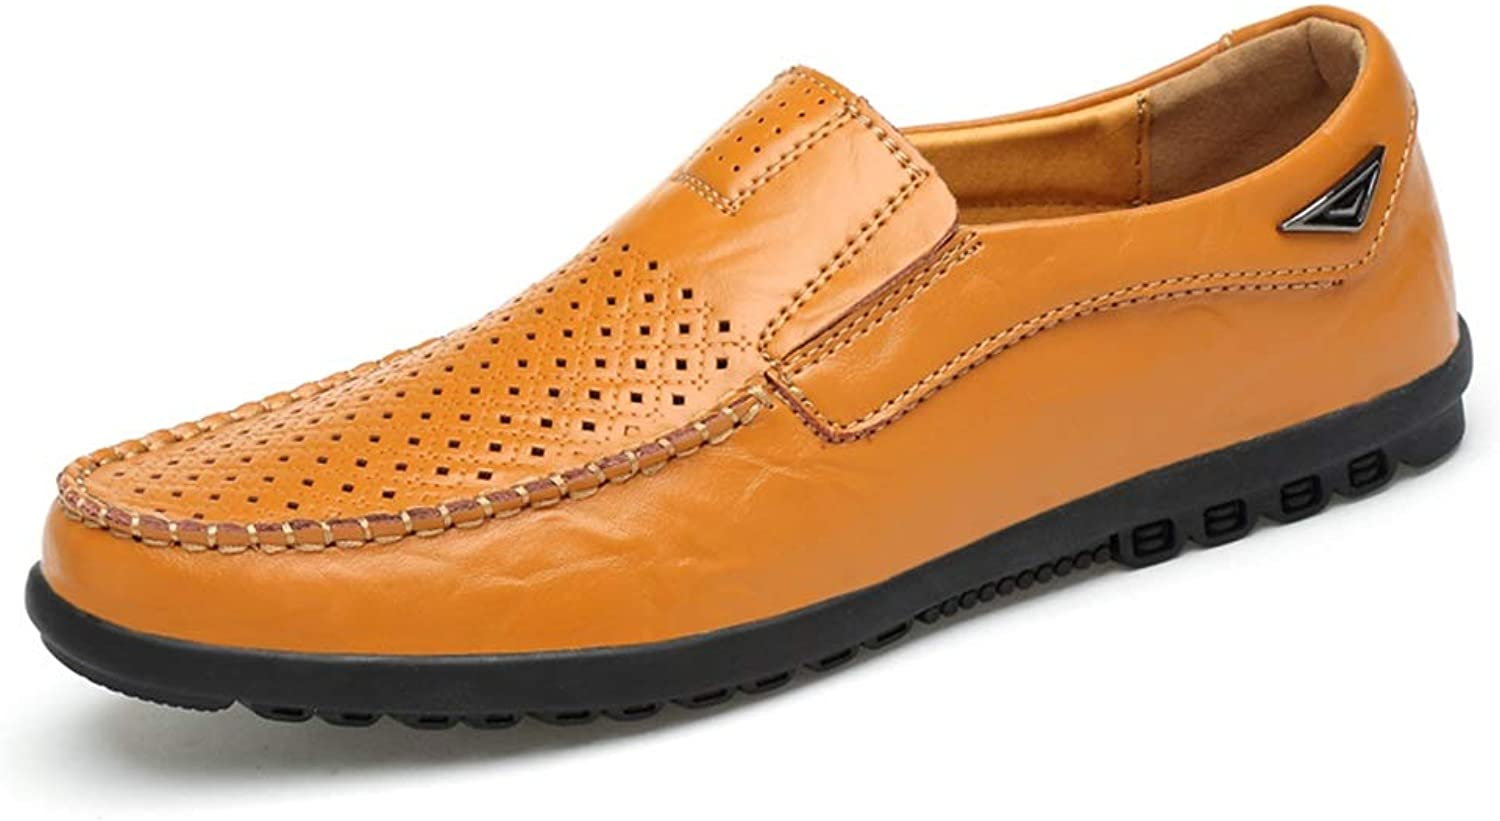 SRY-Fashion shoes Breathable Punctured Handmade Penny Loafers for Men Microfiber Leather Anti-Slip Monotonous Casual shoes Slip-on Round Toe